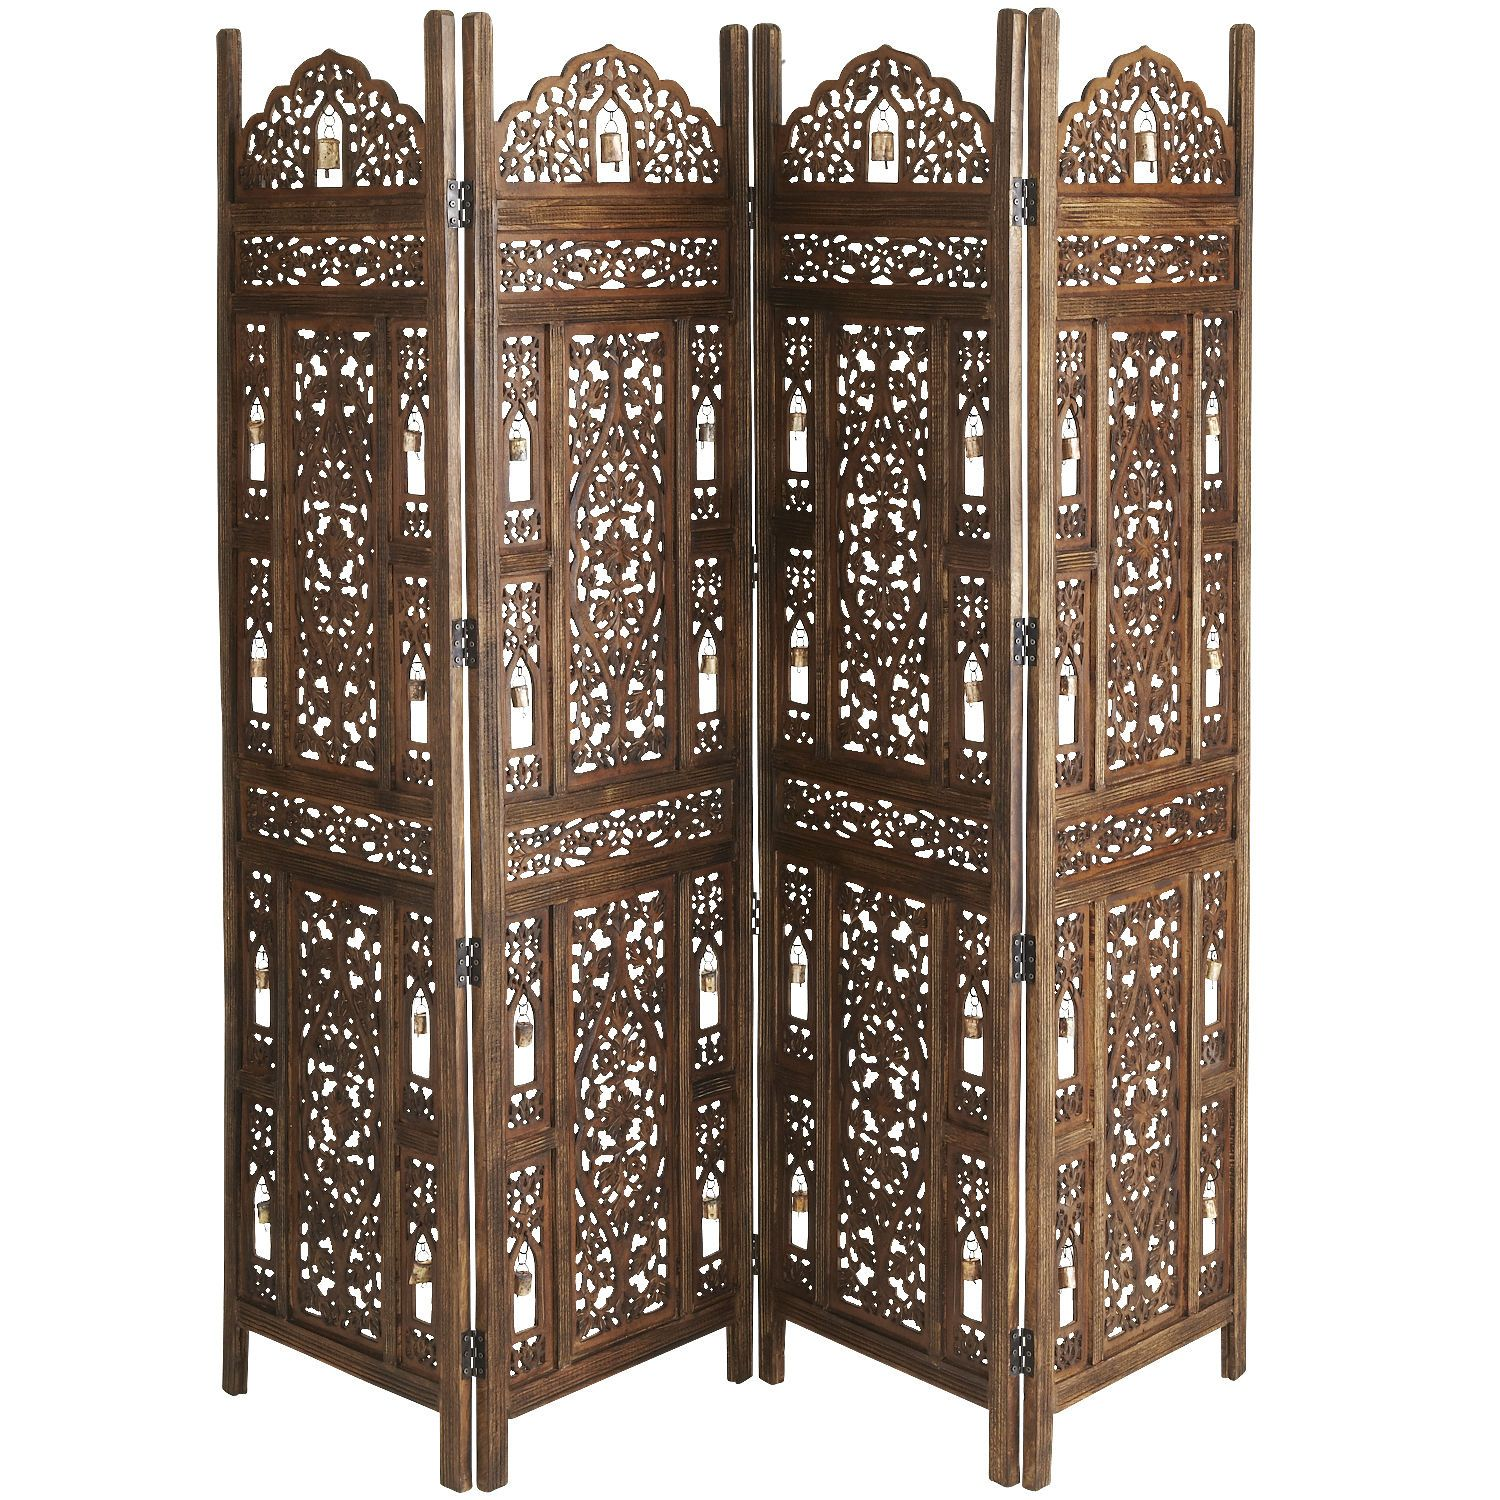 Ghanti Room Divider...so Many Uses For This In My Constantly Evolving Home